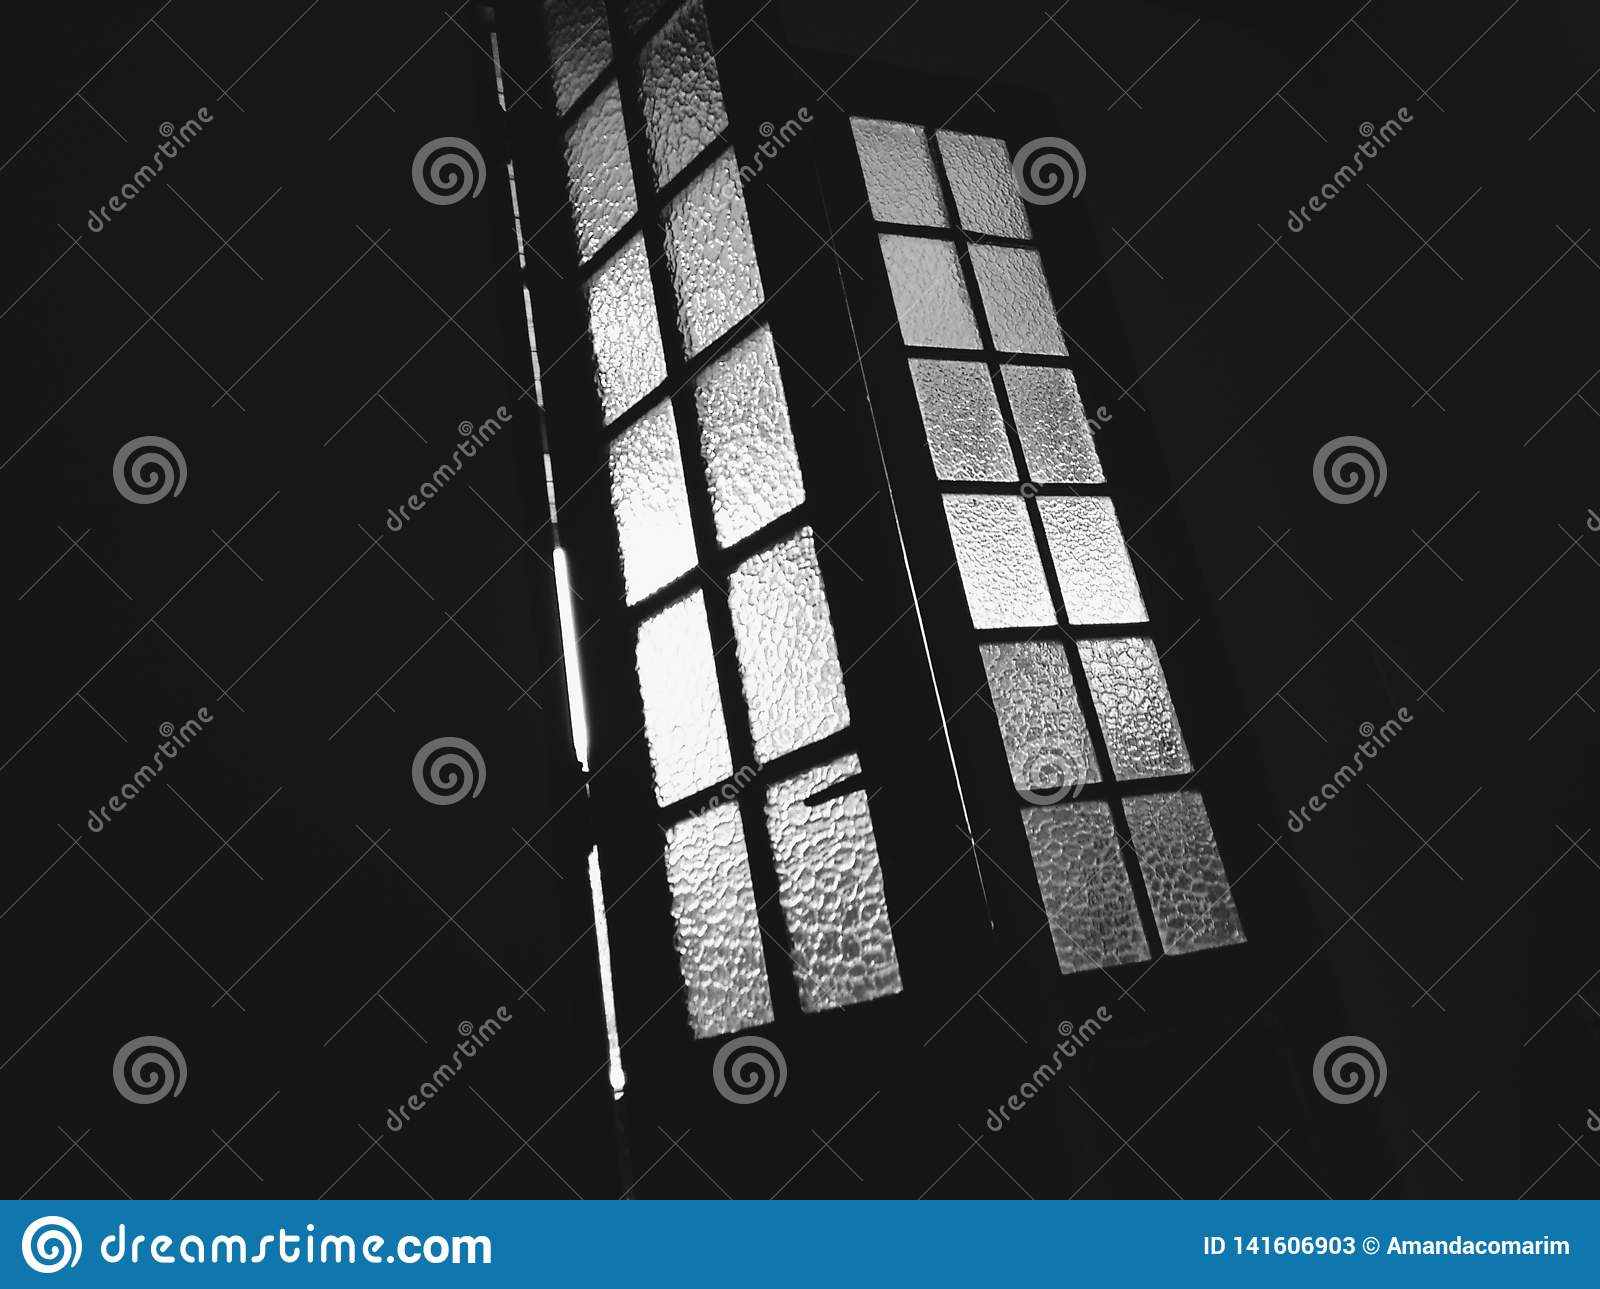 Details of a glass window